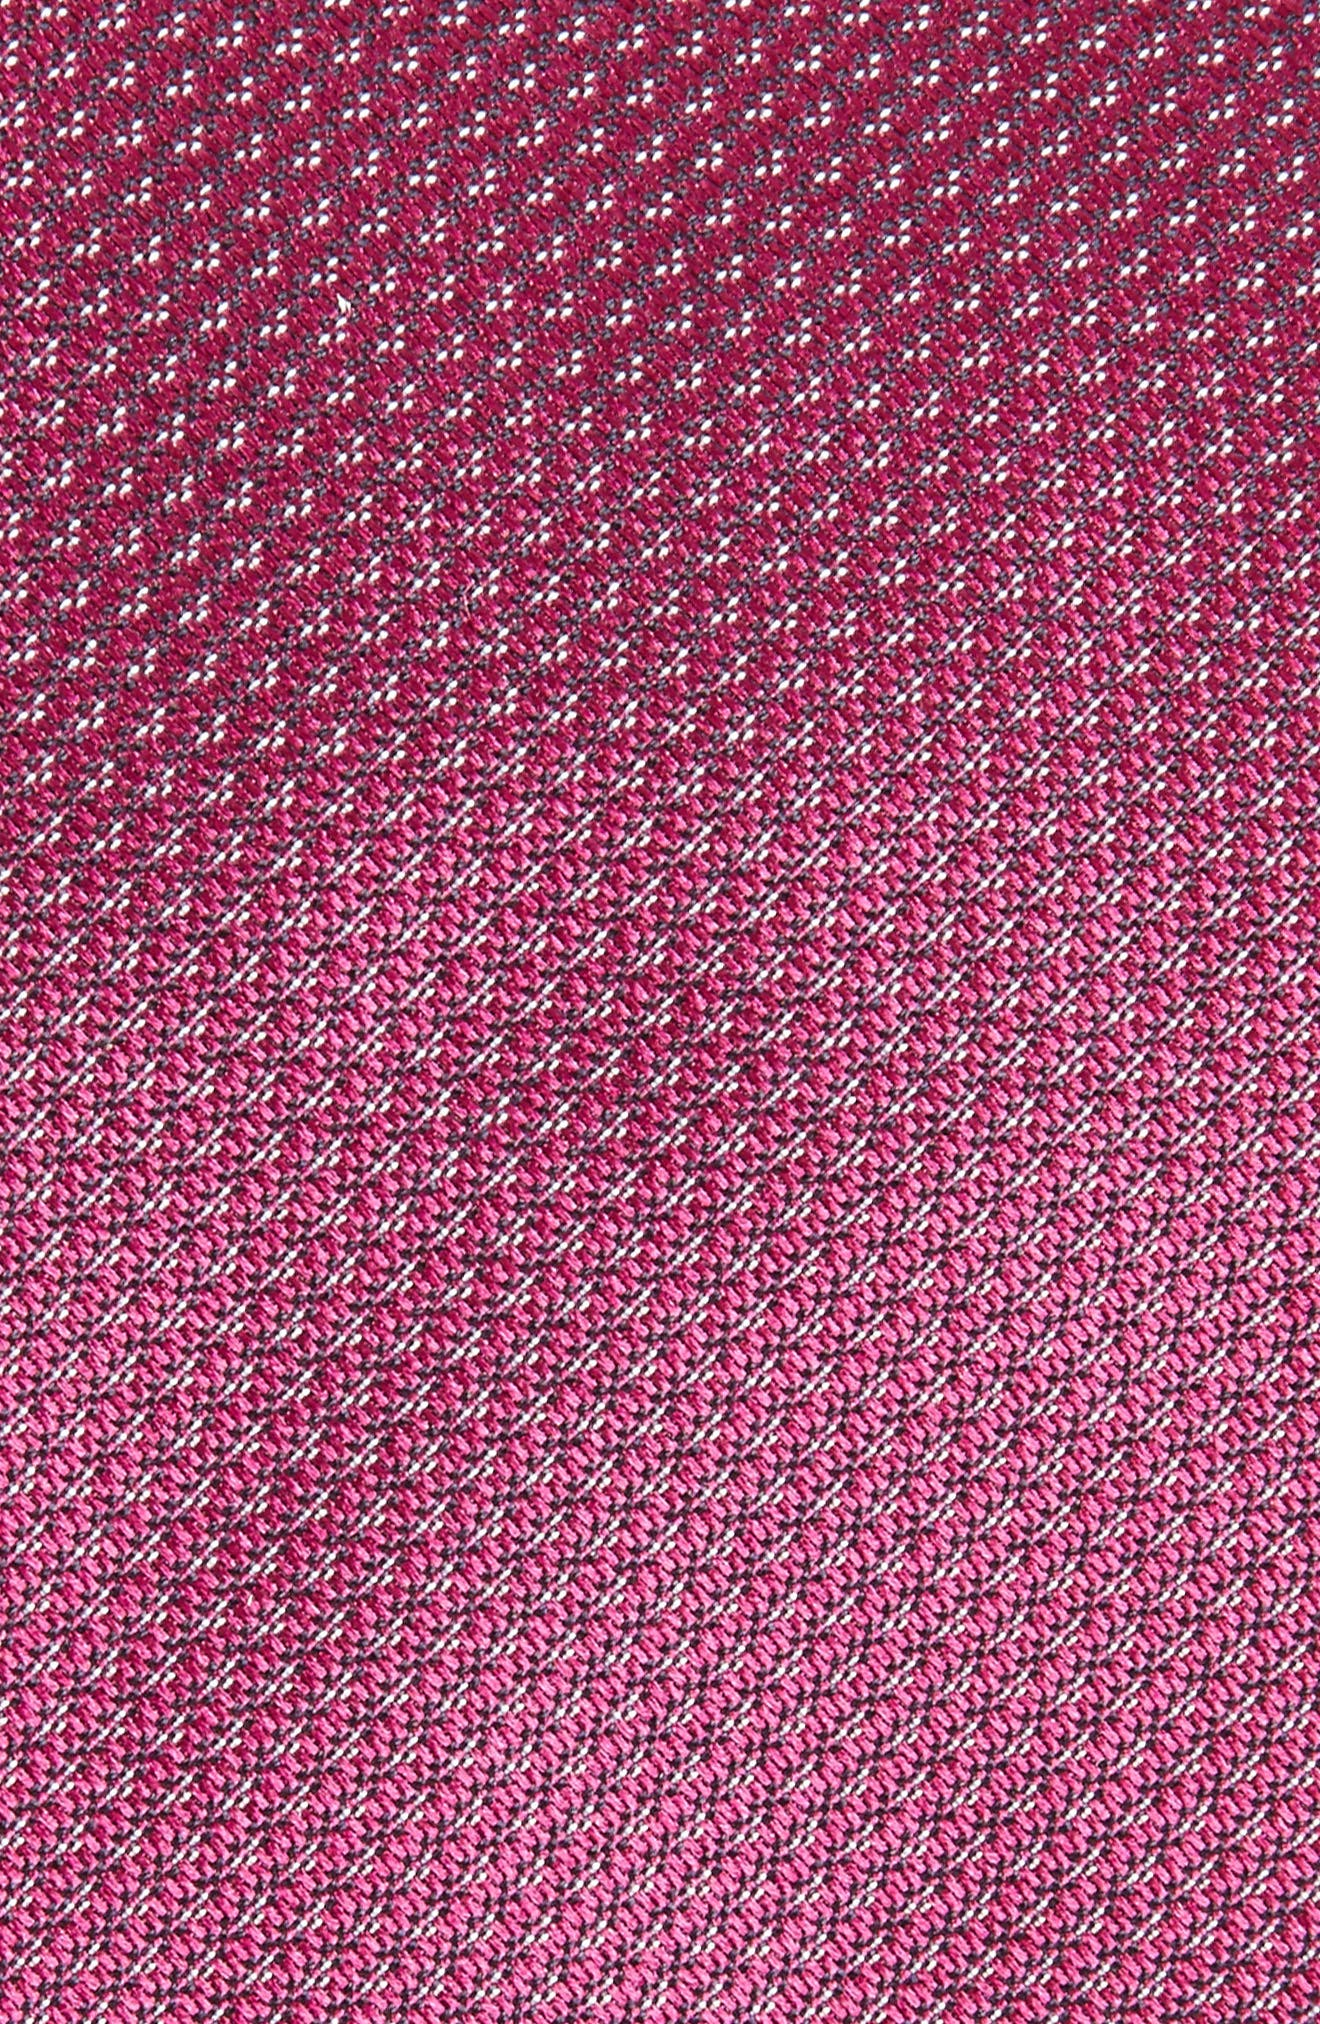 Textured Silk Tie,                             Alternate thumbnail 2, color,                             Berry